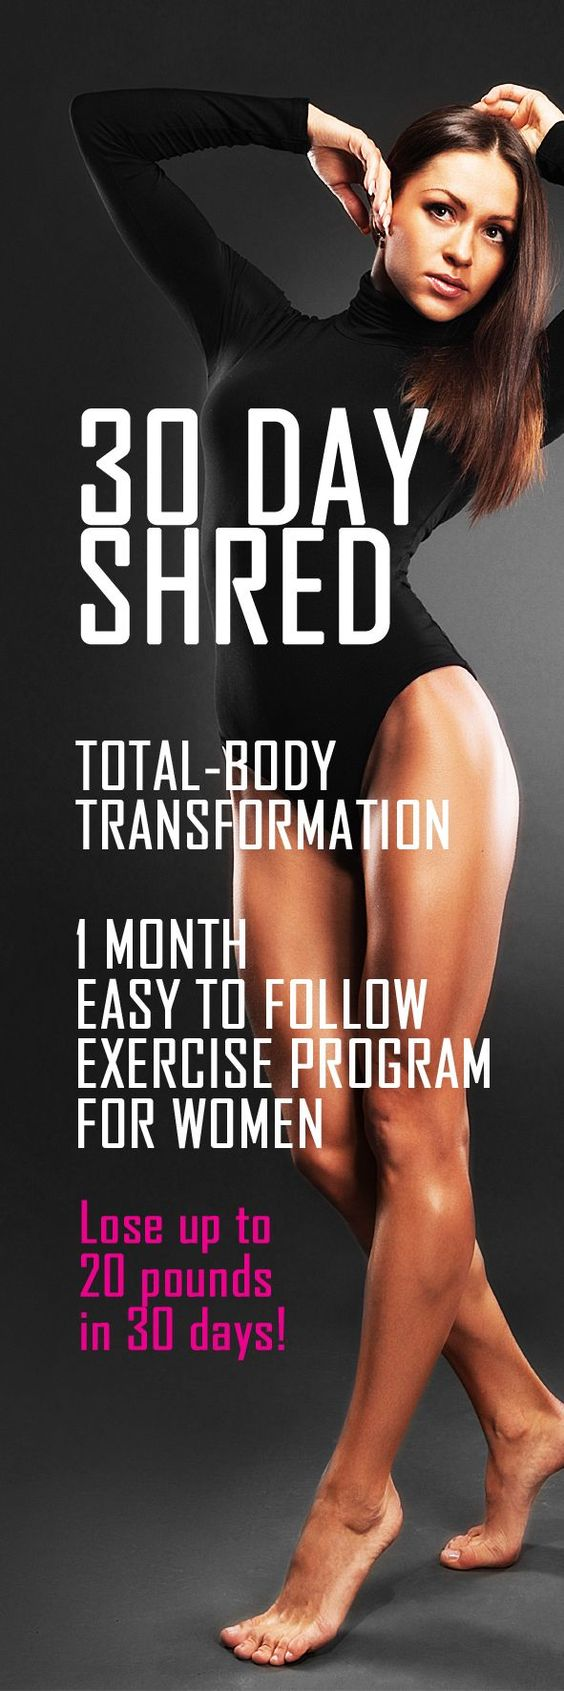 Jillian Michaels 30 Day Shred Level 1 will burn fat with this interval training fitness system, combining strength, cardio, and abs workouts that blast calories